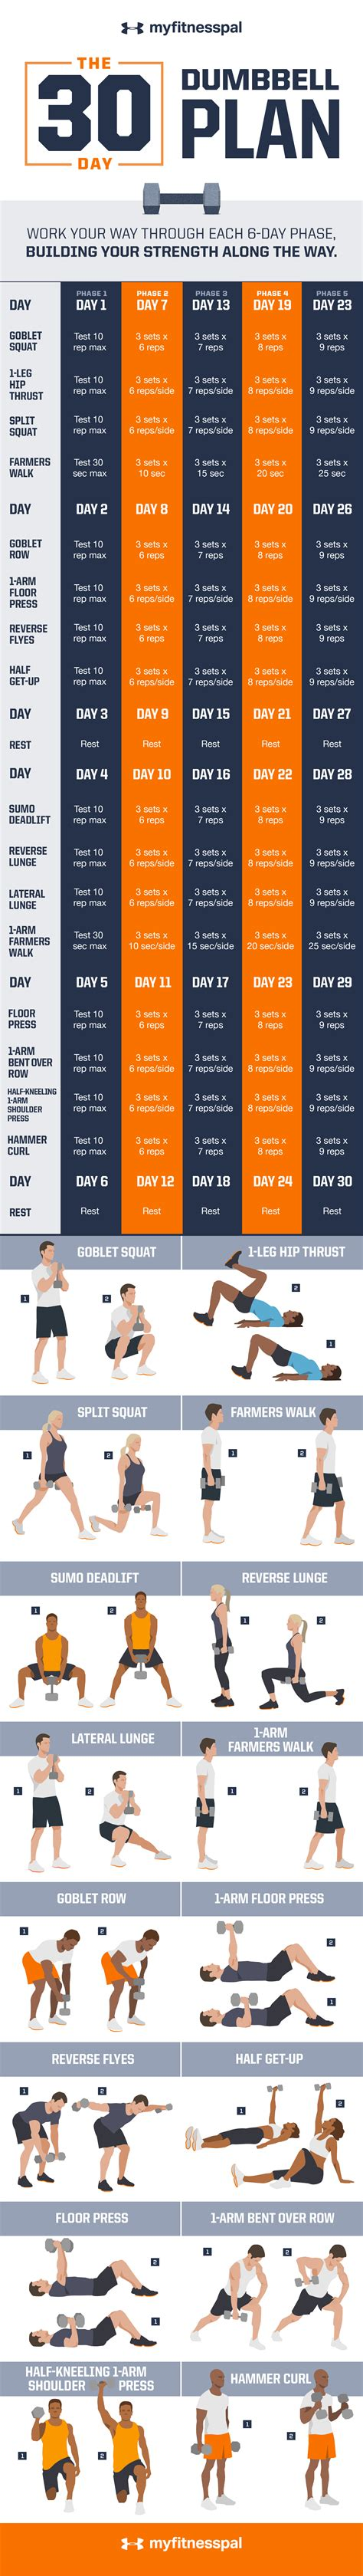 Improve Your Fitness Fast with This 30-Day Dumbbell Plan